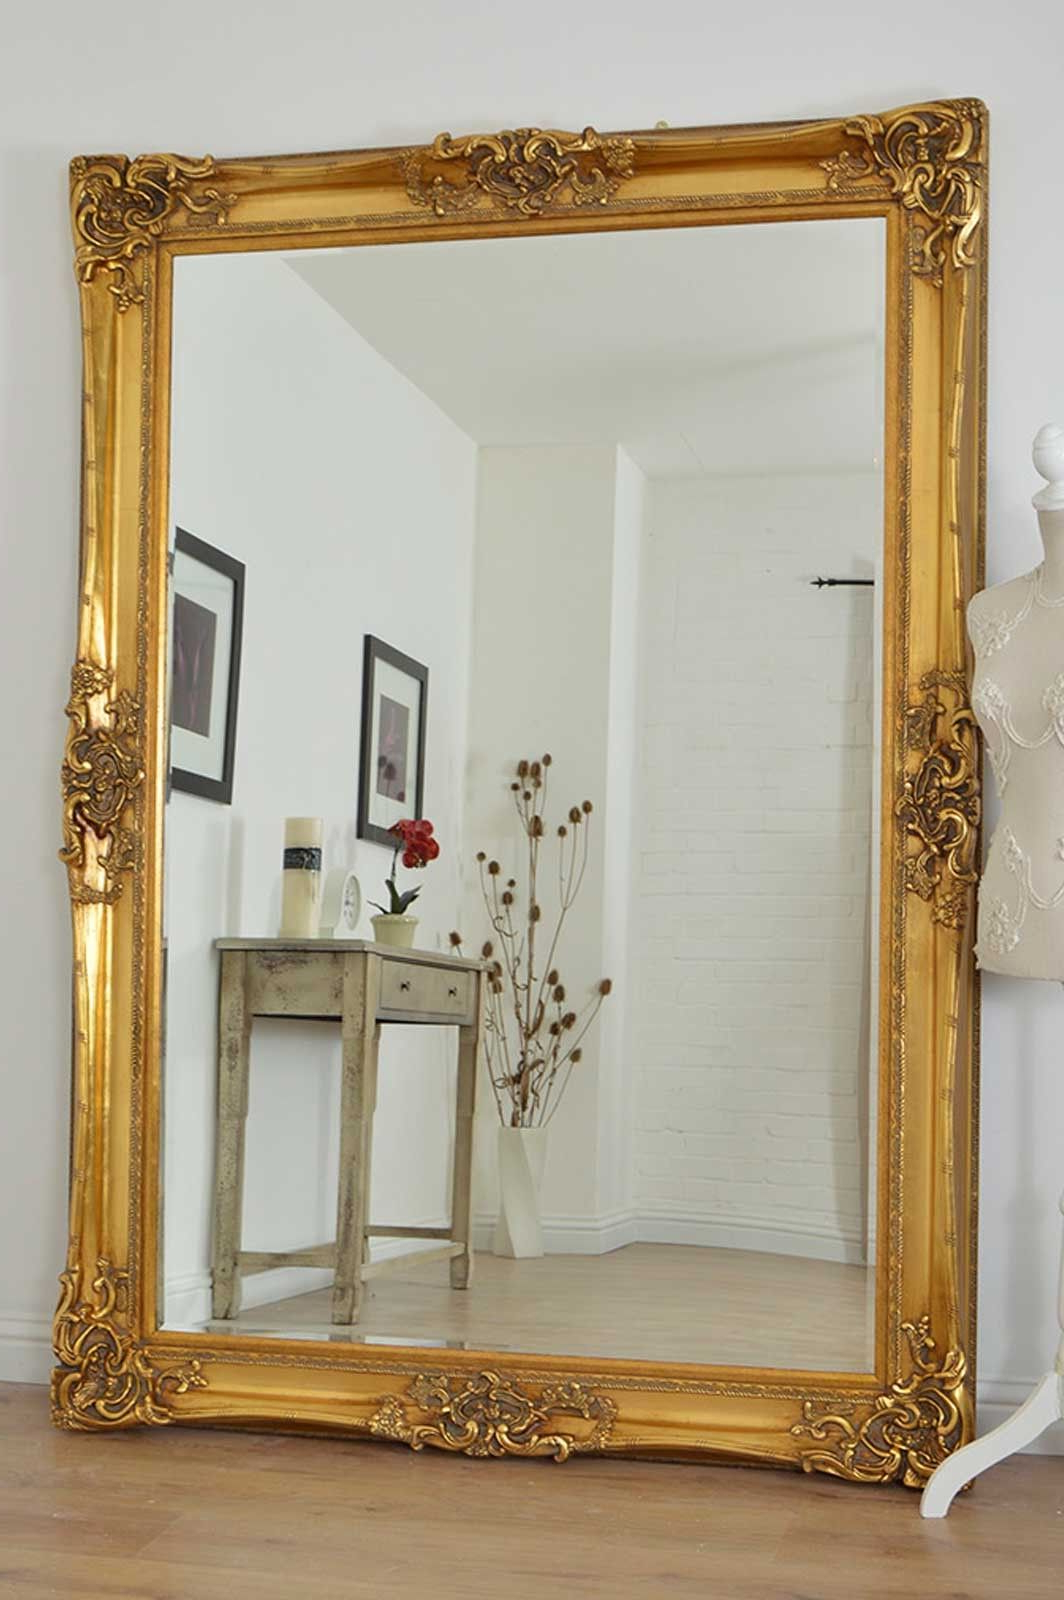 Well Known Large Gold Very Ornate Antique Design Wall Mirror 7ft X 5ft (213cm X In Rectangle Ornate Geometric Wall Mirrors (View 5 of 20)